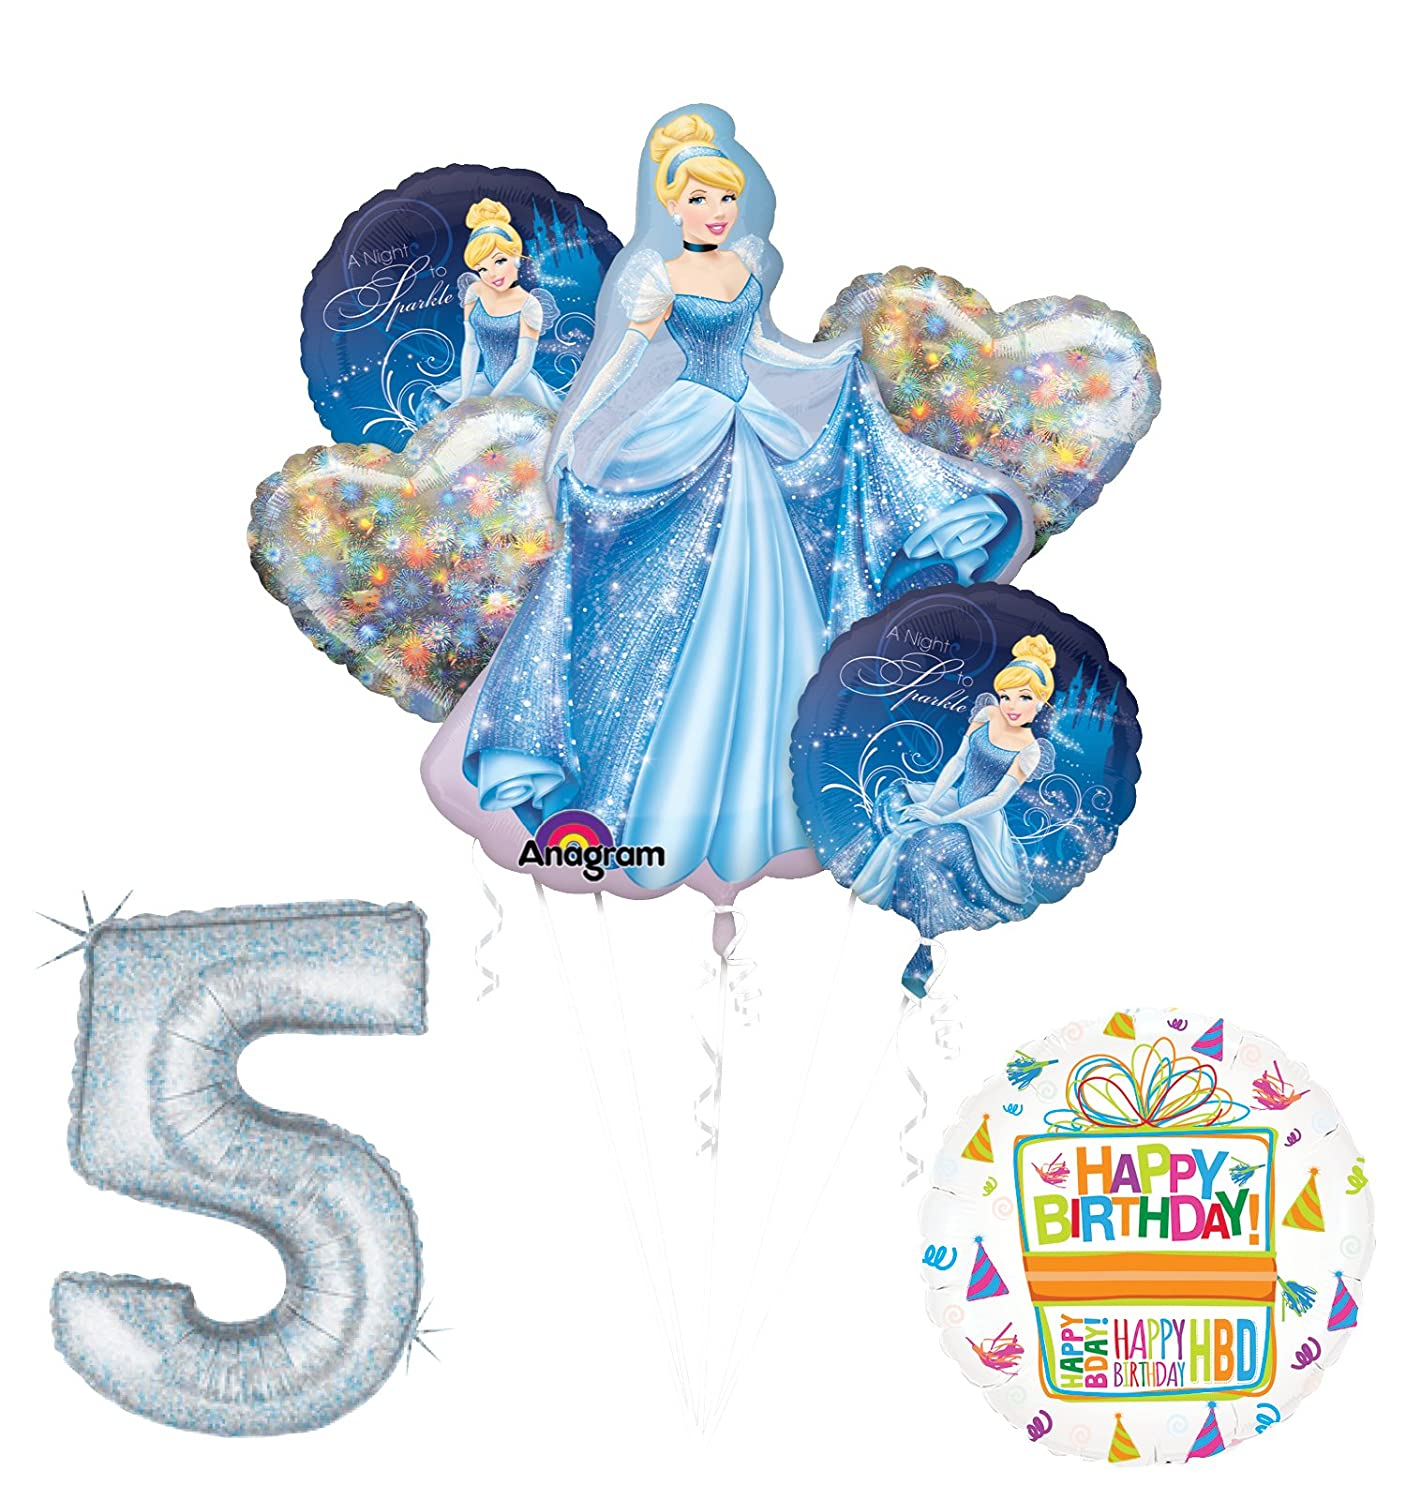 Mayflower Products Cinderella 5th birthday party supplies and princess balloon decorations